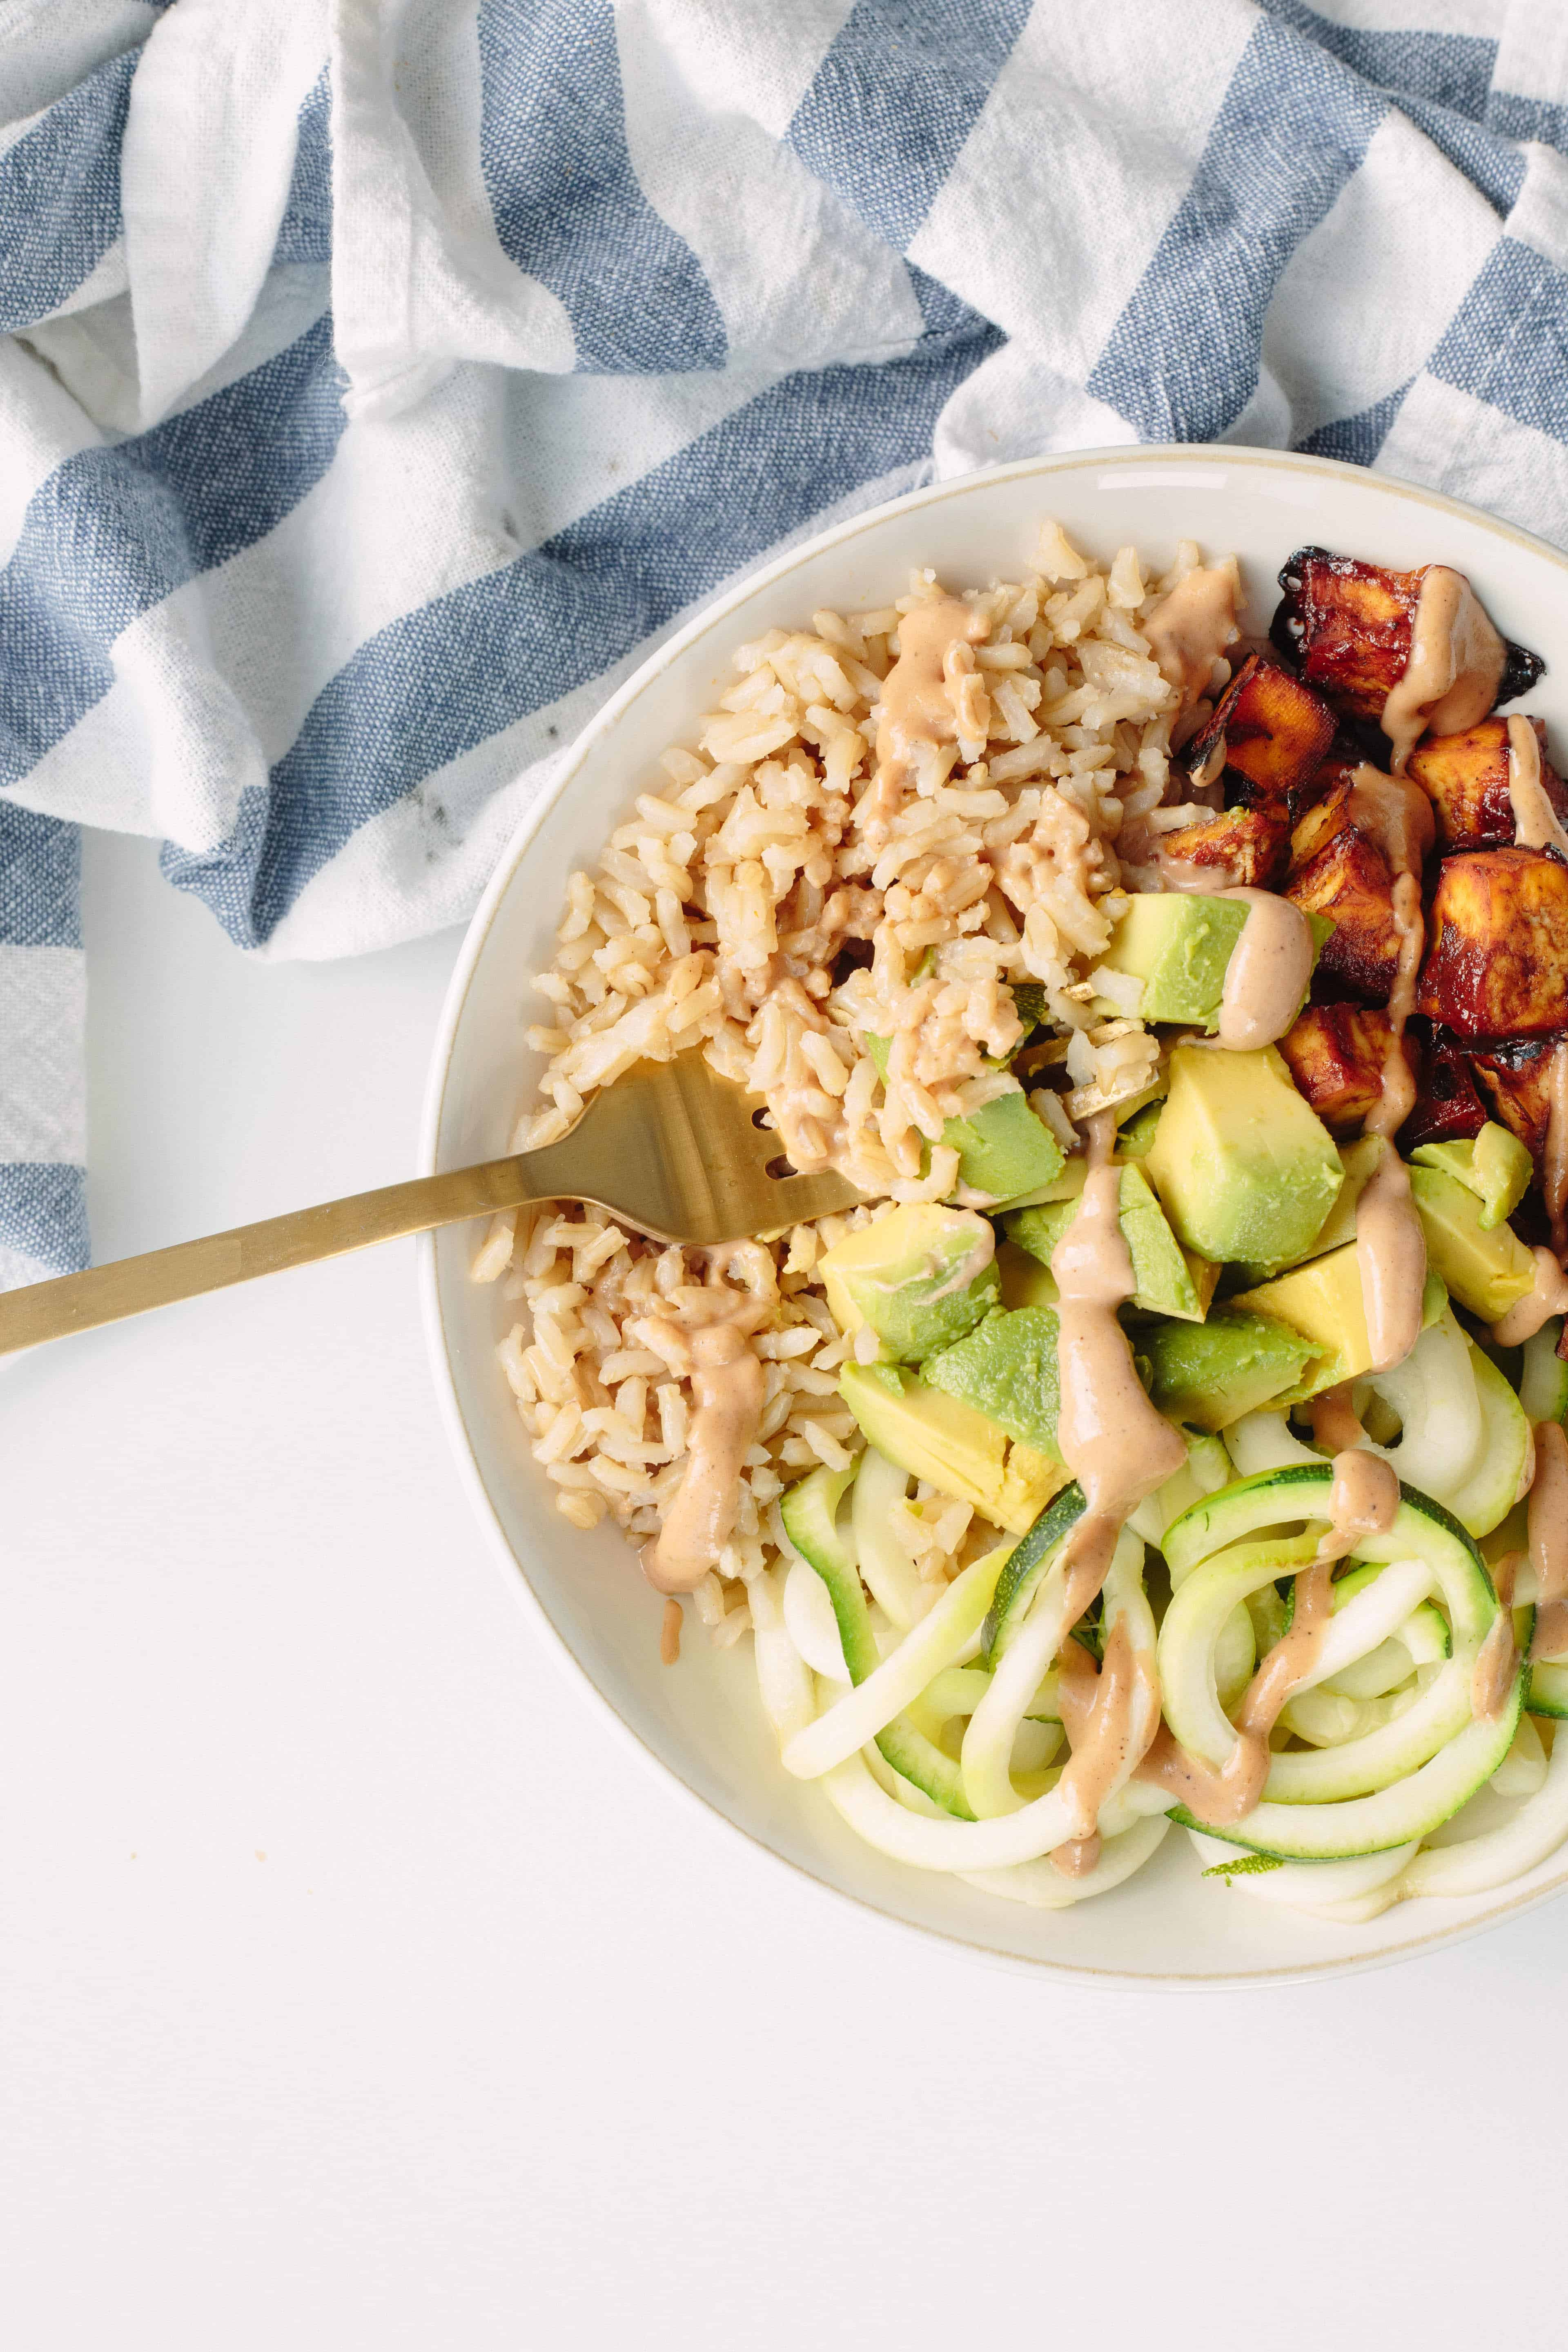 BBQ Baked Tofu and Brown Rice Bowls with Zucchini Noodles